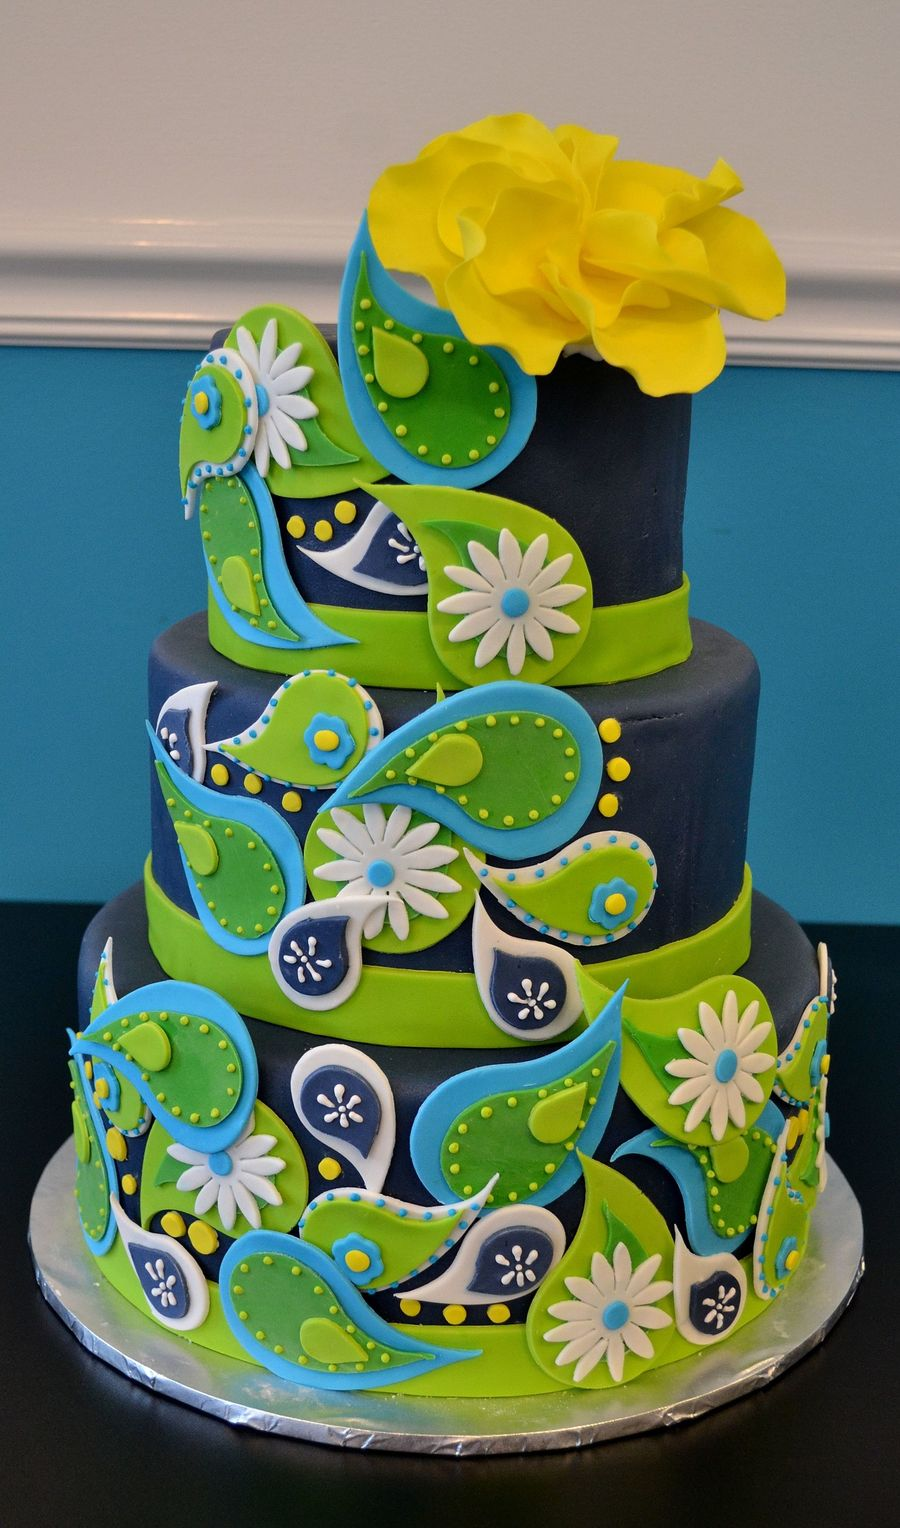 Amazing Cake Designs Easy : Paisley Cake Dummy Cake Covered In Fondant And Accented ...